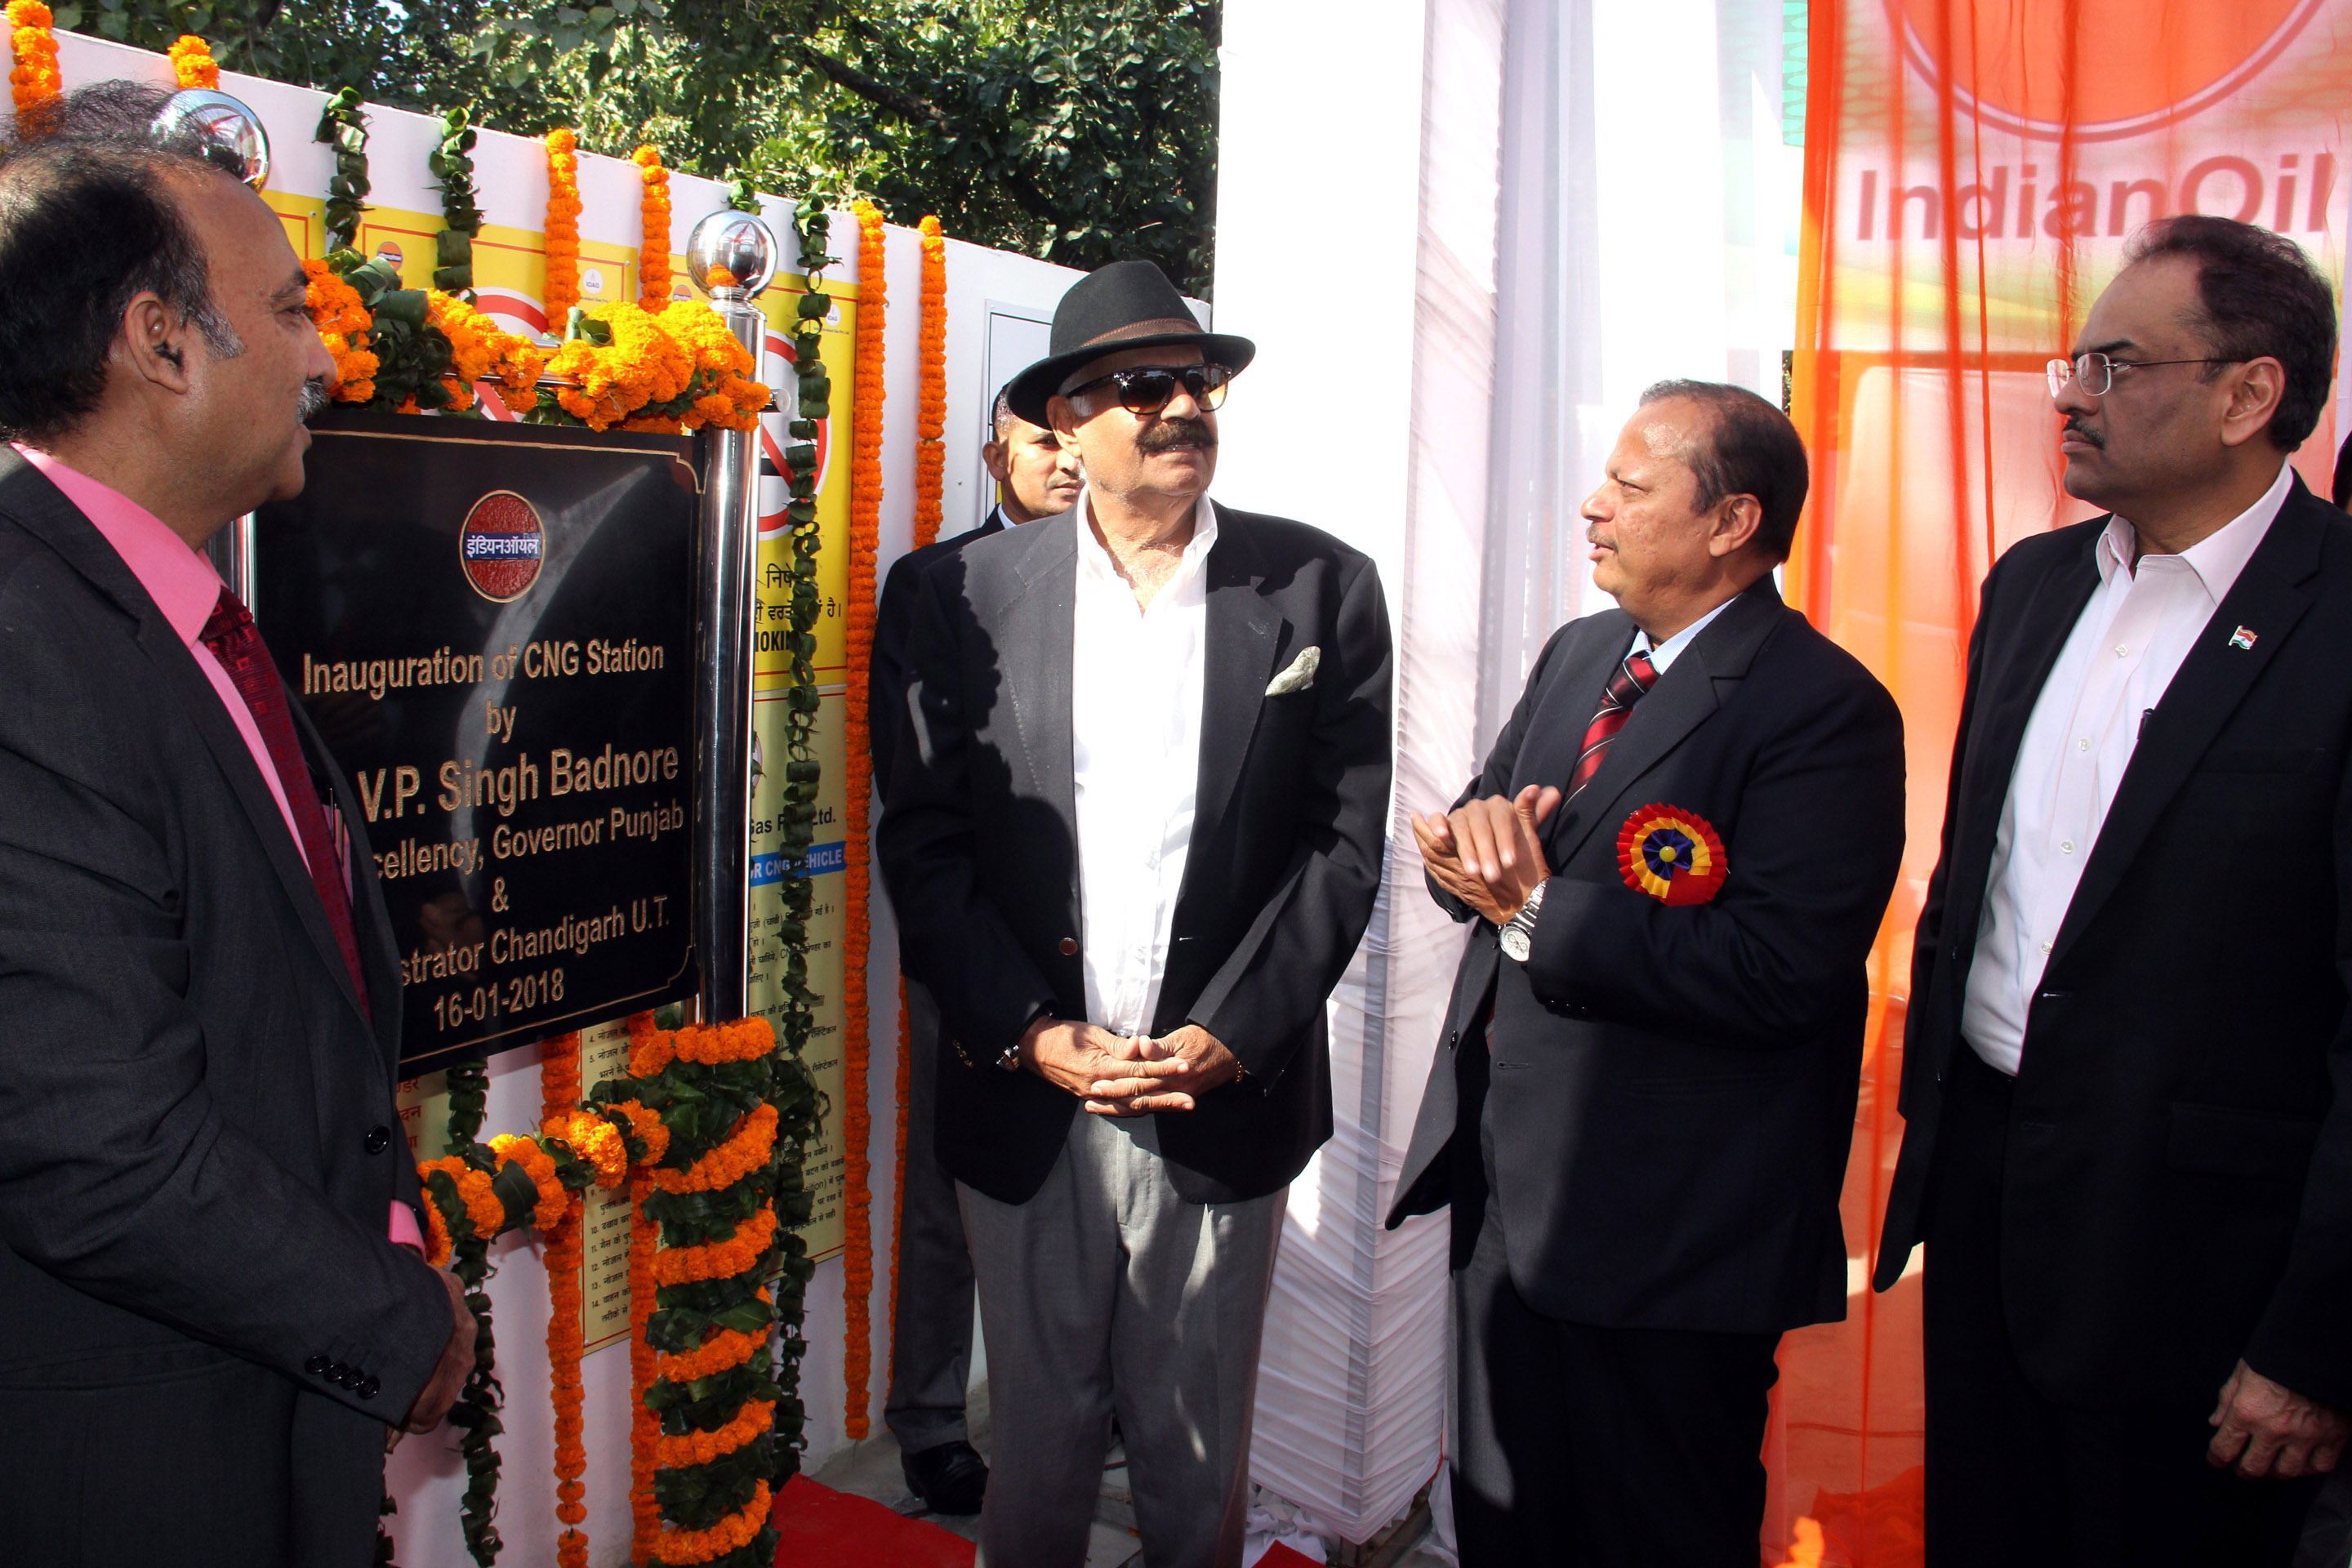 The Governor of Punjab and Administrator, UT, Chandigarh, Shri V.P. Singh Badnore alongwith the Adviser to the Administrator, UT, Chandigarh, Shri Parimal Rai inaugurating the CNG Station at Sector-17, Chandigarh on Tuesday, January 16, 2017.